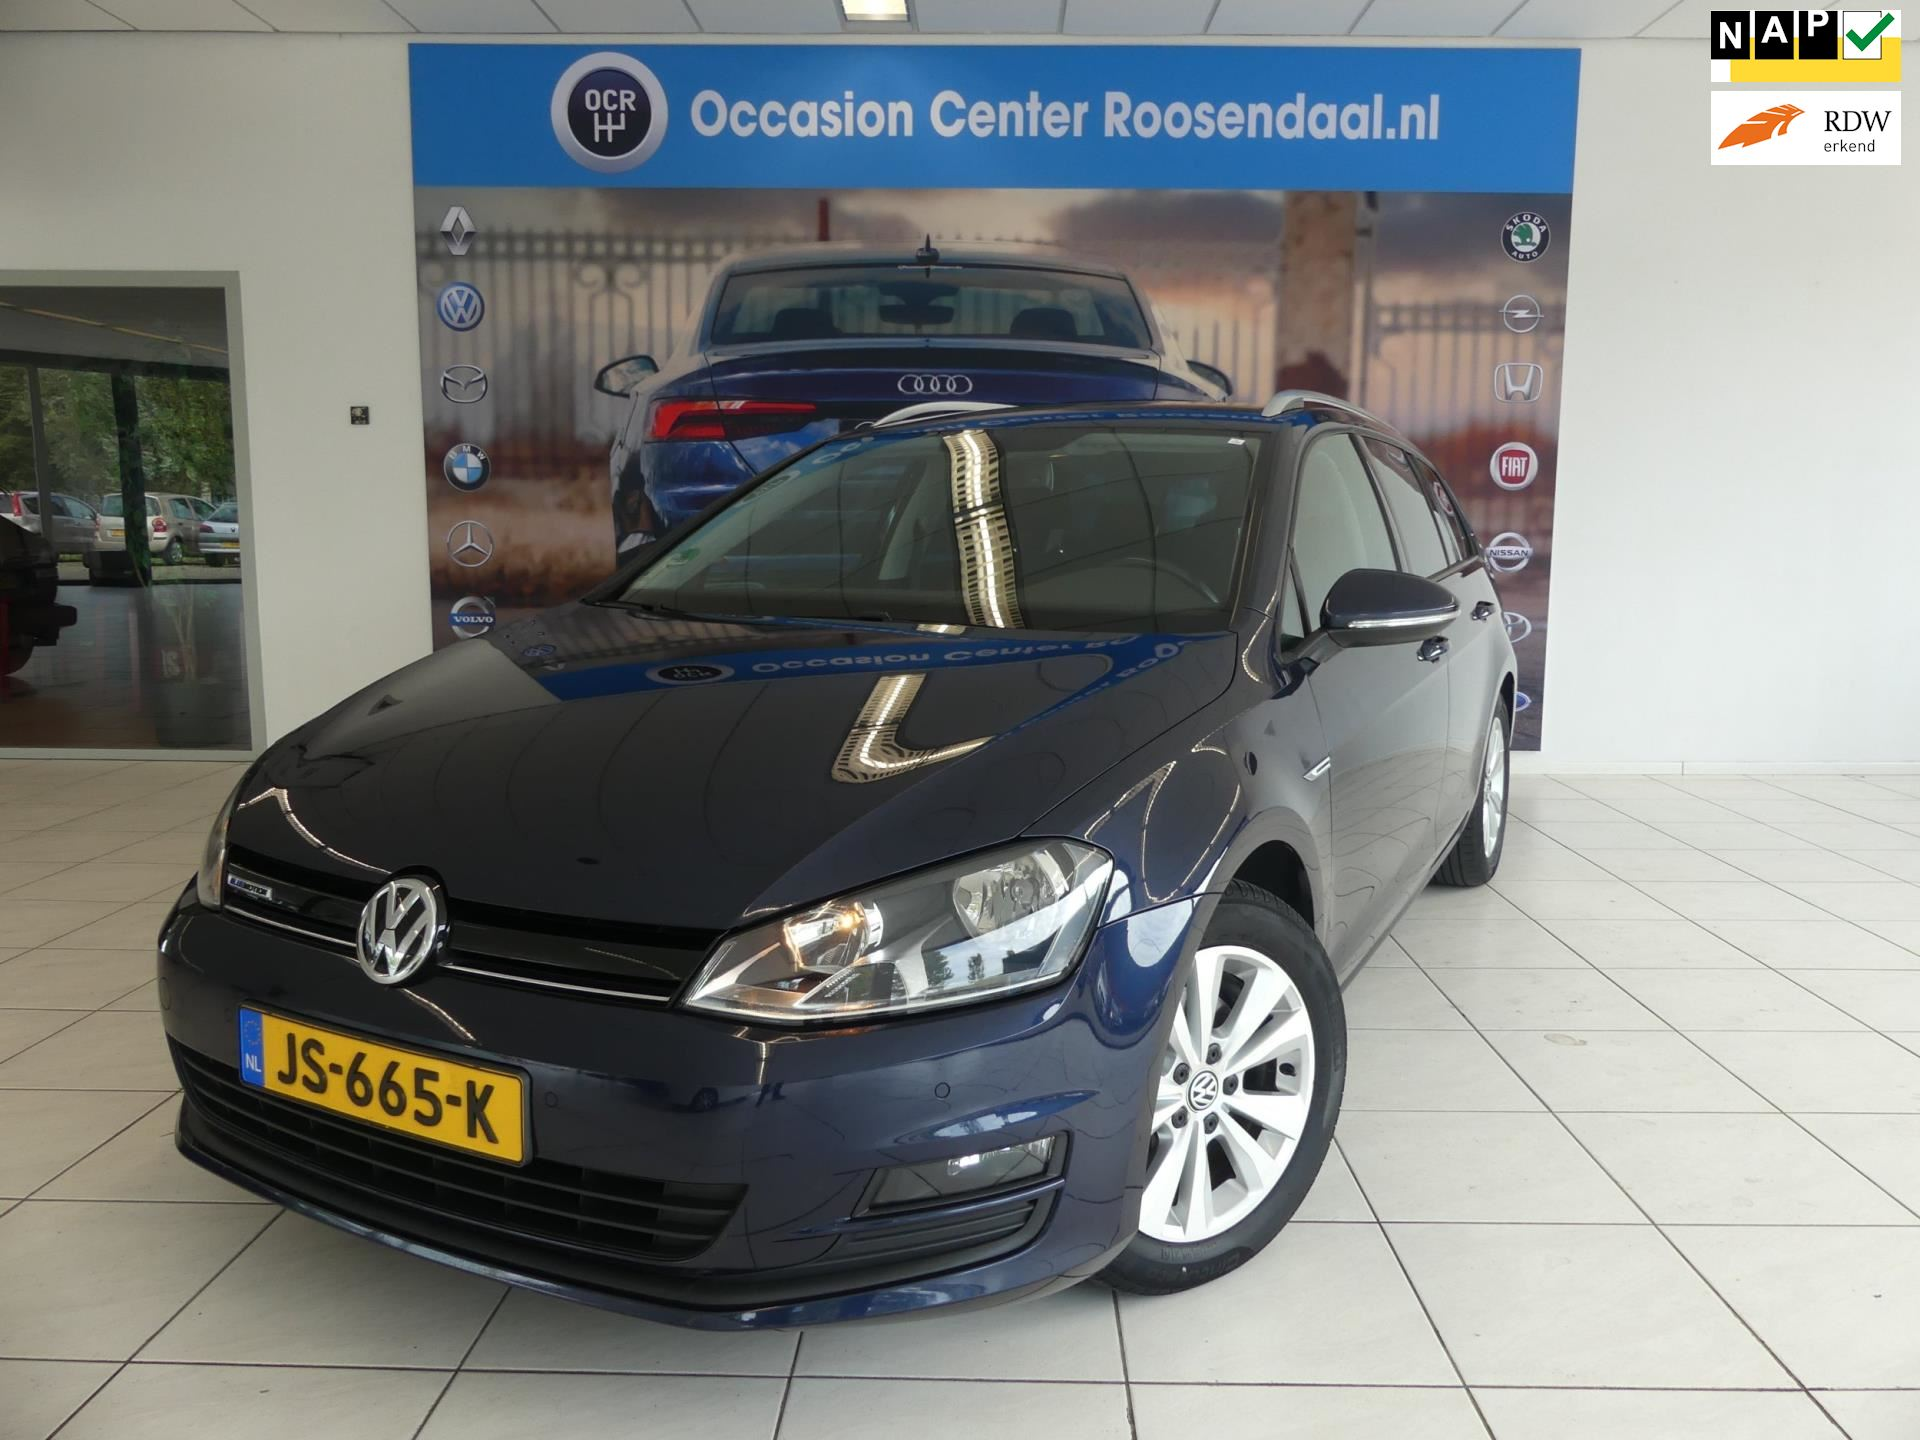 Volkswagen Golf Variant occasion - Occasion Center Roosendaal